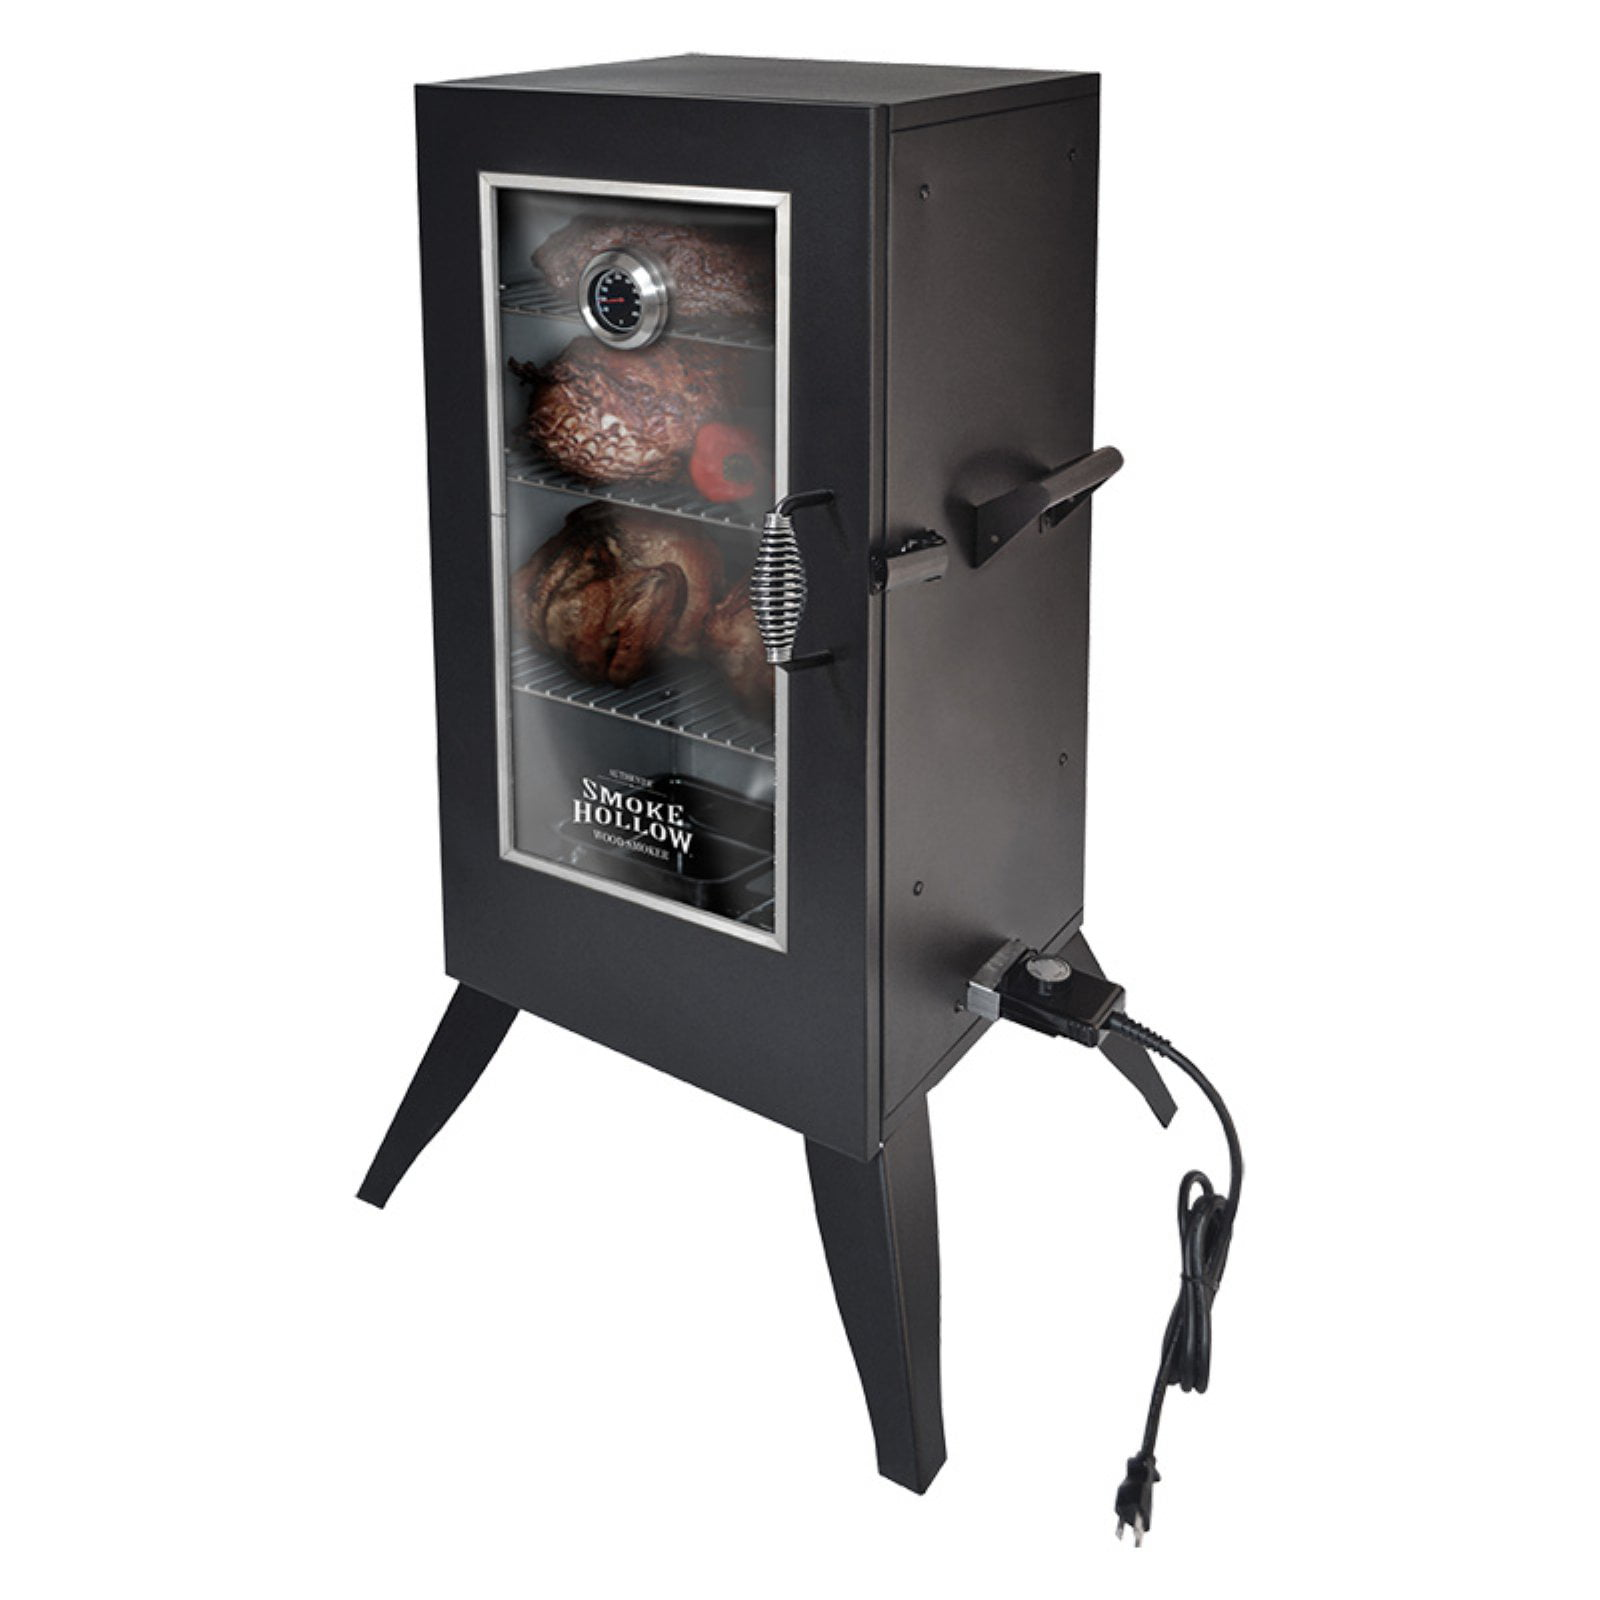 "Smoke Hollow 30"" Electric Smoker with Window by Outdoor Leisure Products"